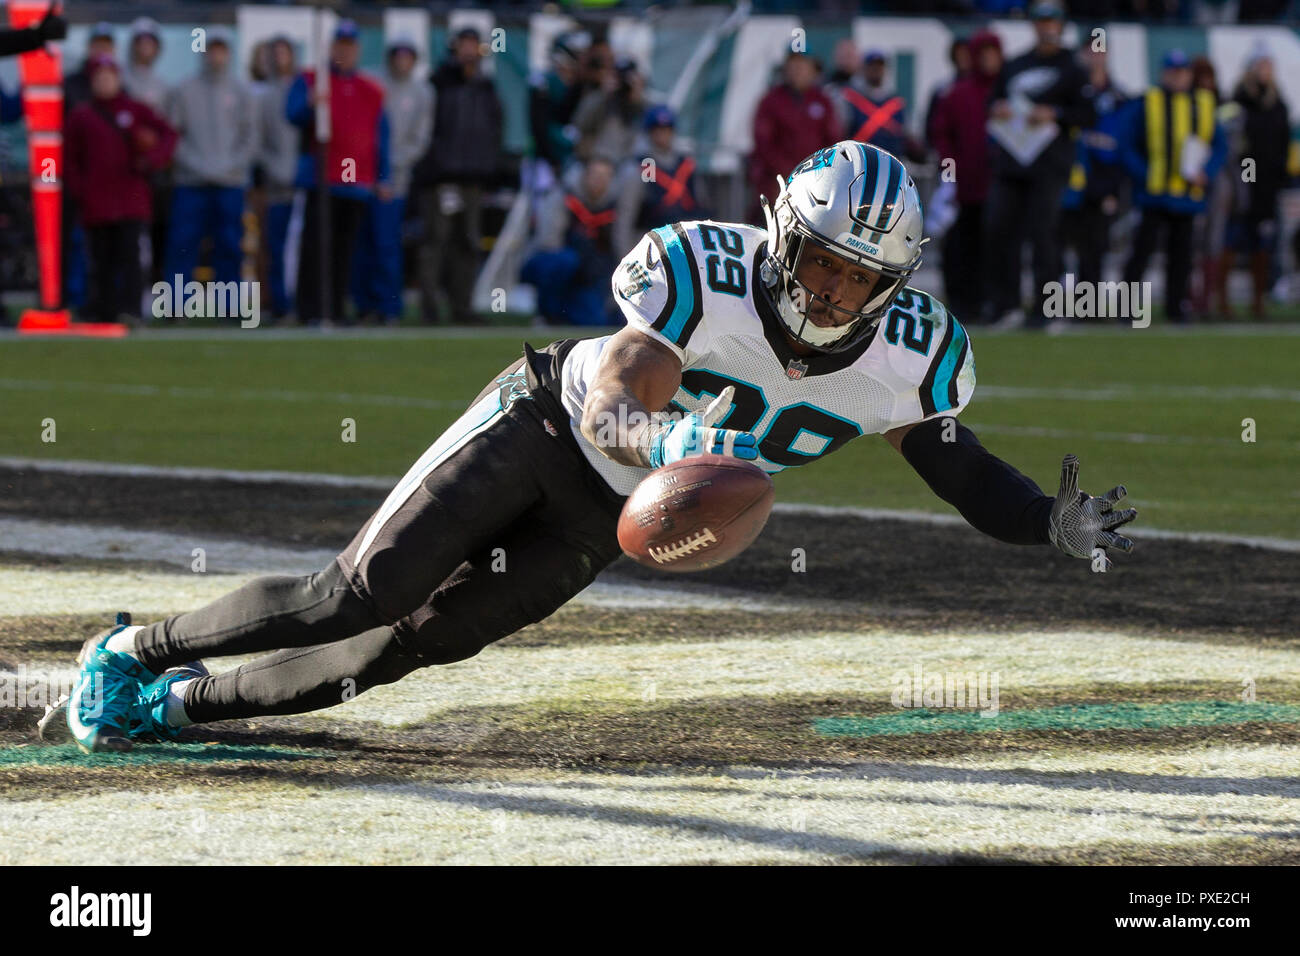 344c3004c Carolina Panthers free safety Mike Adams (29) unable to make the  interception during the NFL game between the Carolina Panthers and the  Philadelphia Eagles ...